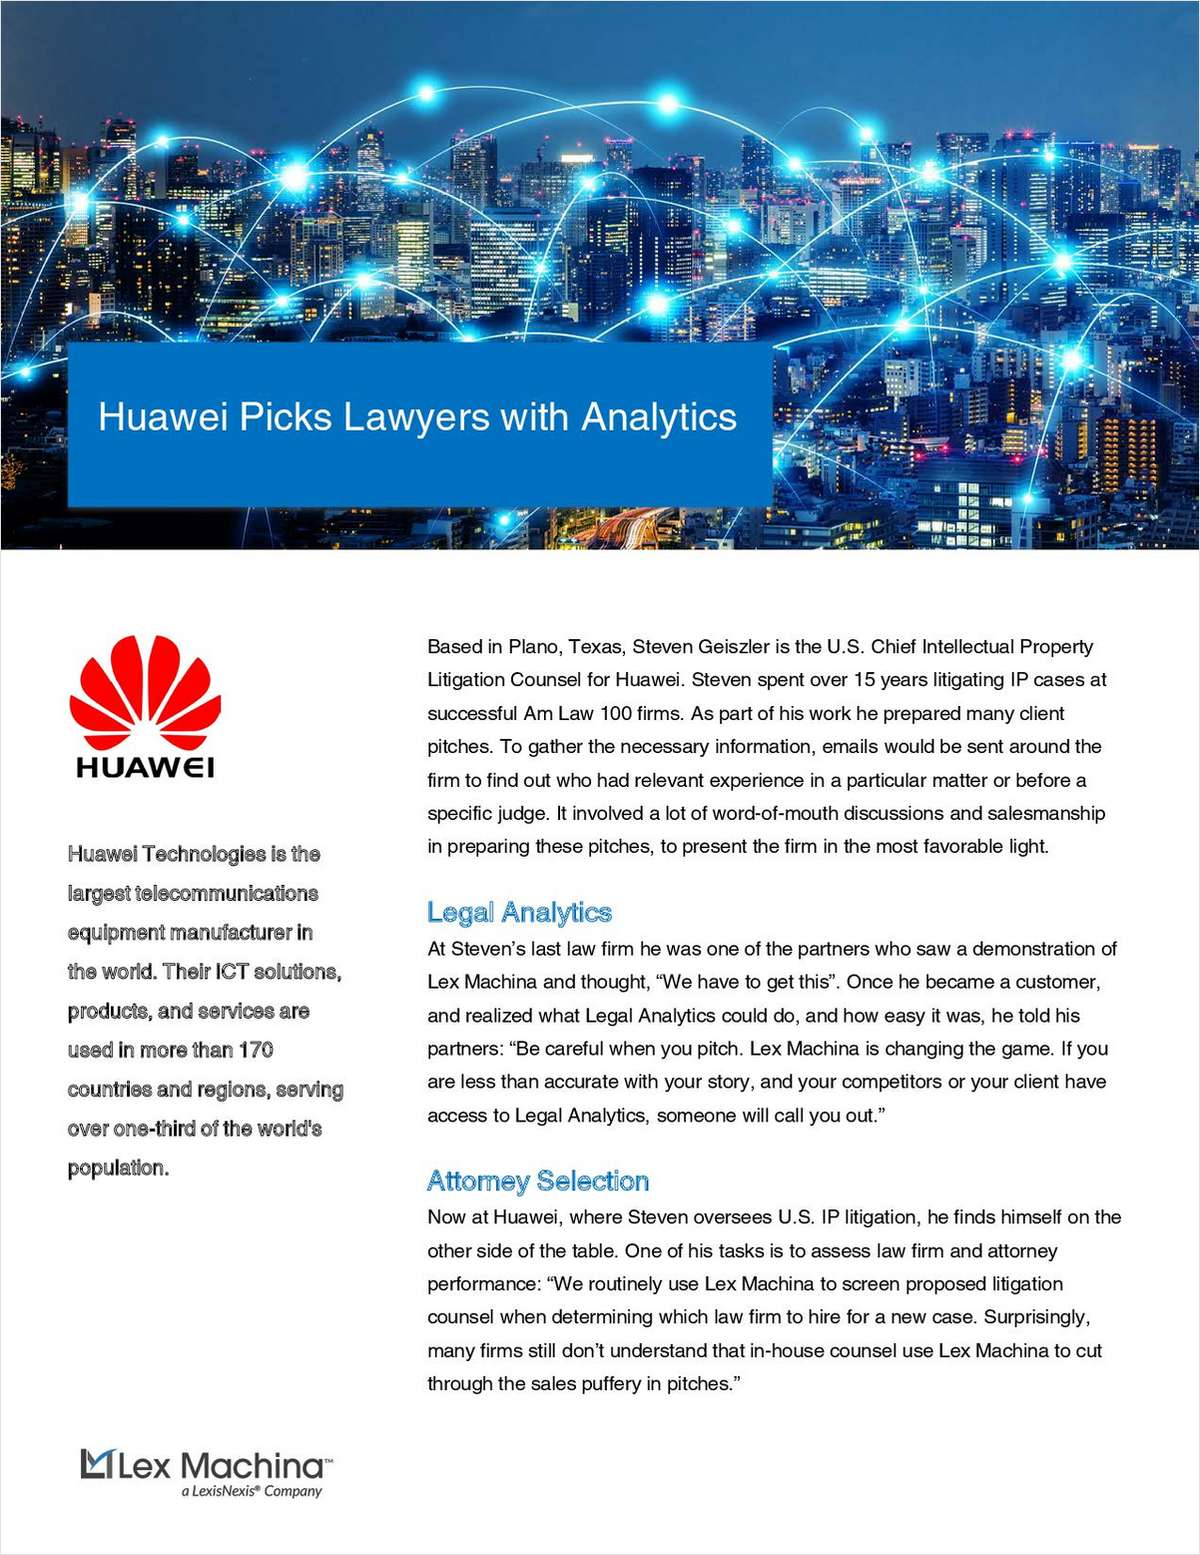 How Analytics Helps Huawei Pick Outside Counsel Lawyers